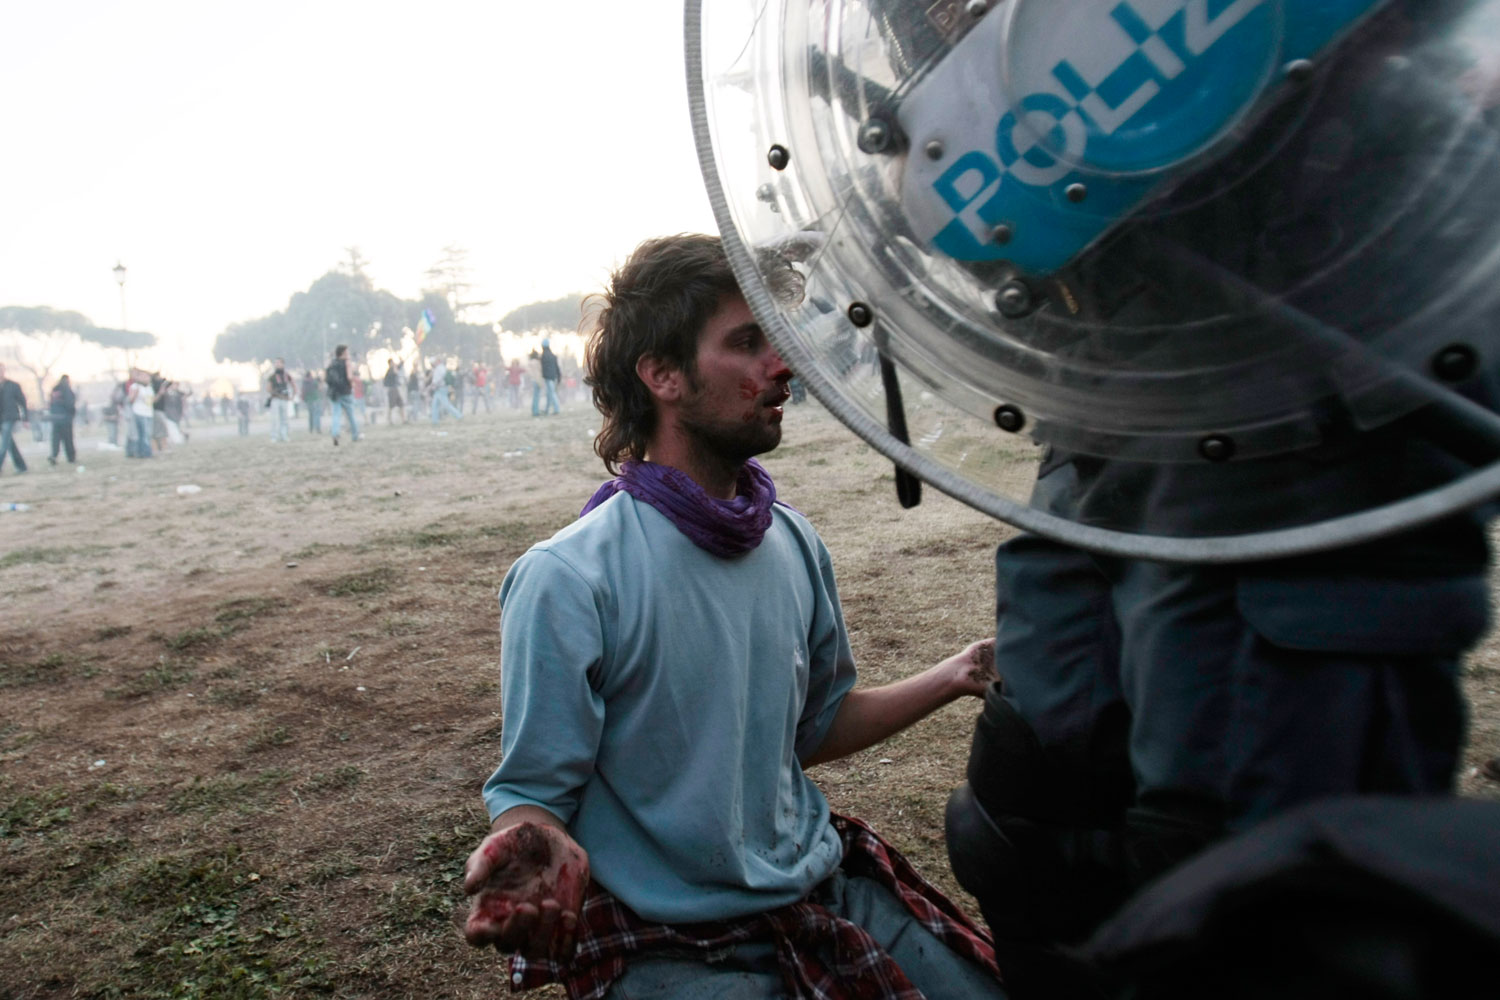 October 15, 2011. An injured Occupy Wall Street protester kneels before a police officer in Rome. Protests against banks, wealth inequality and economic policies have spread to dozens of cities worldwide. In Rome, police fired tear gas and water cannons as protesters smashed windows, threw bottles and set cars ablaze.